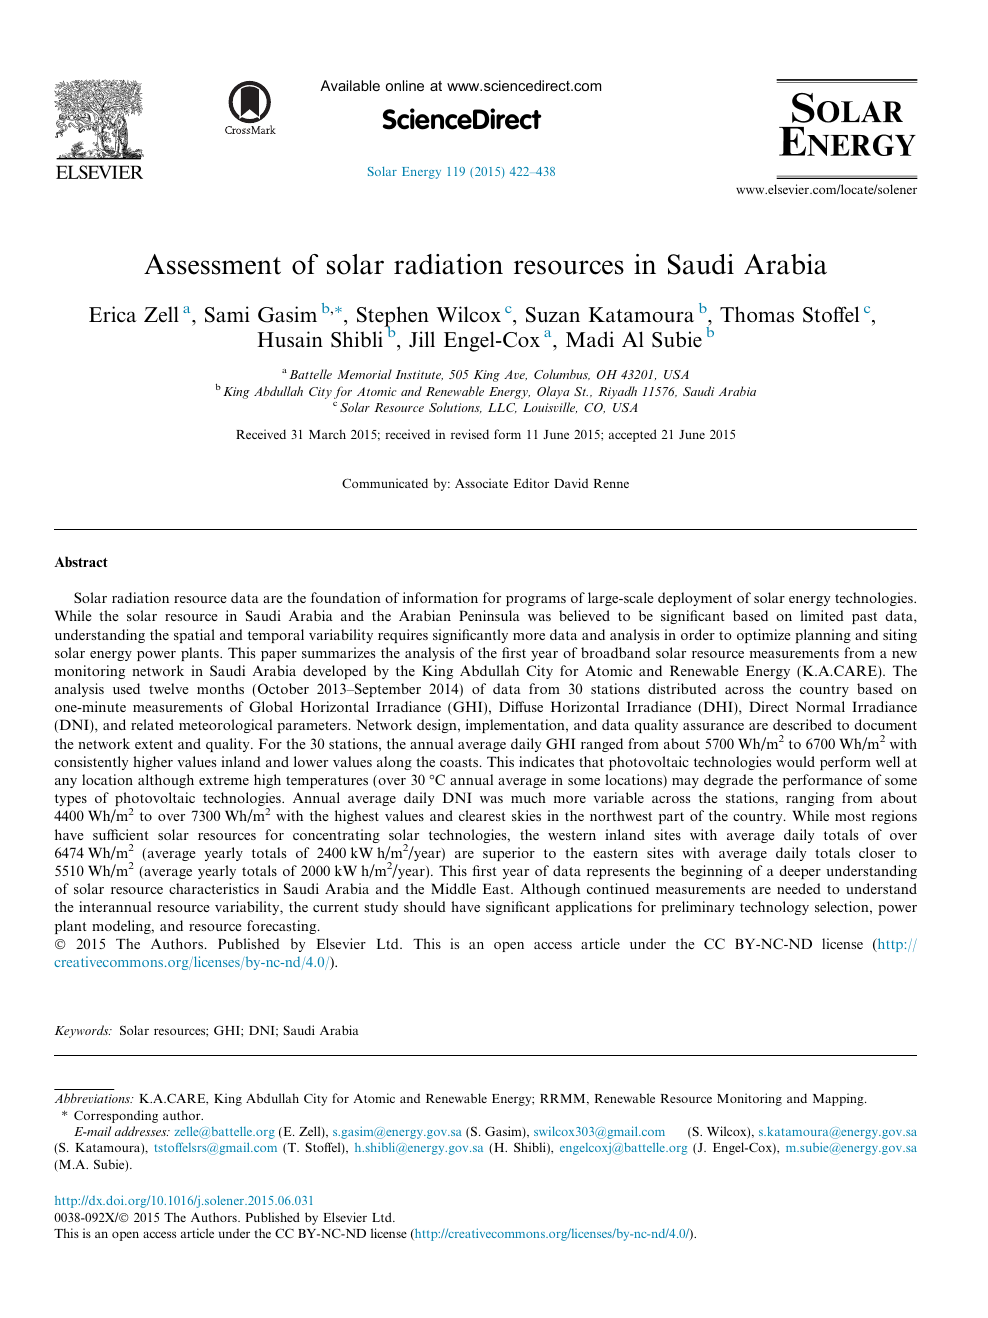 Assessment of solar radiation resources in Saudi Arabia – topic of